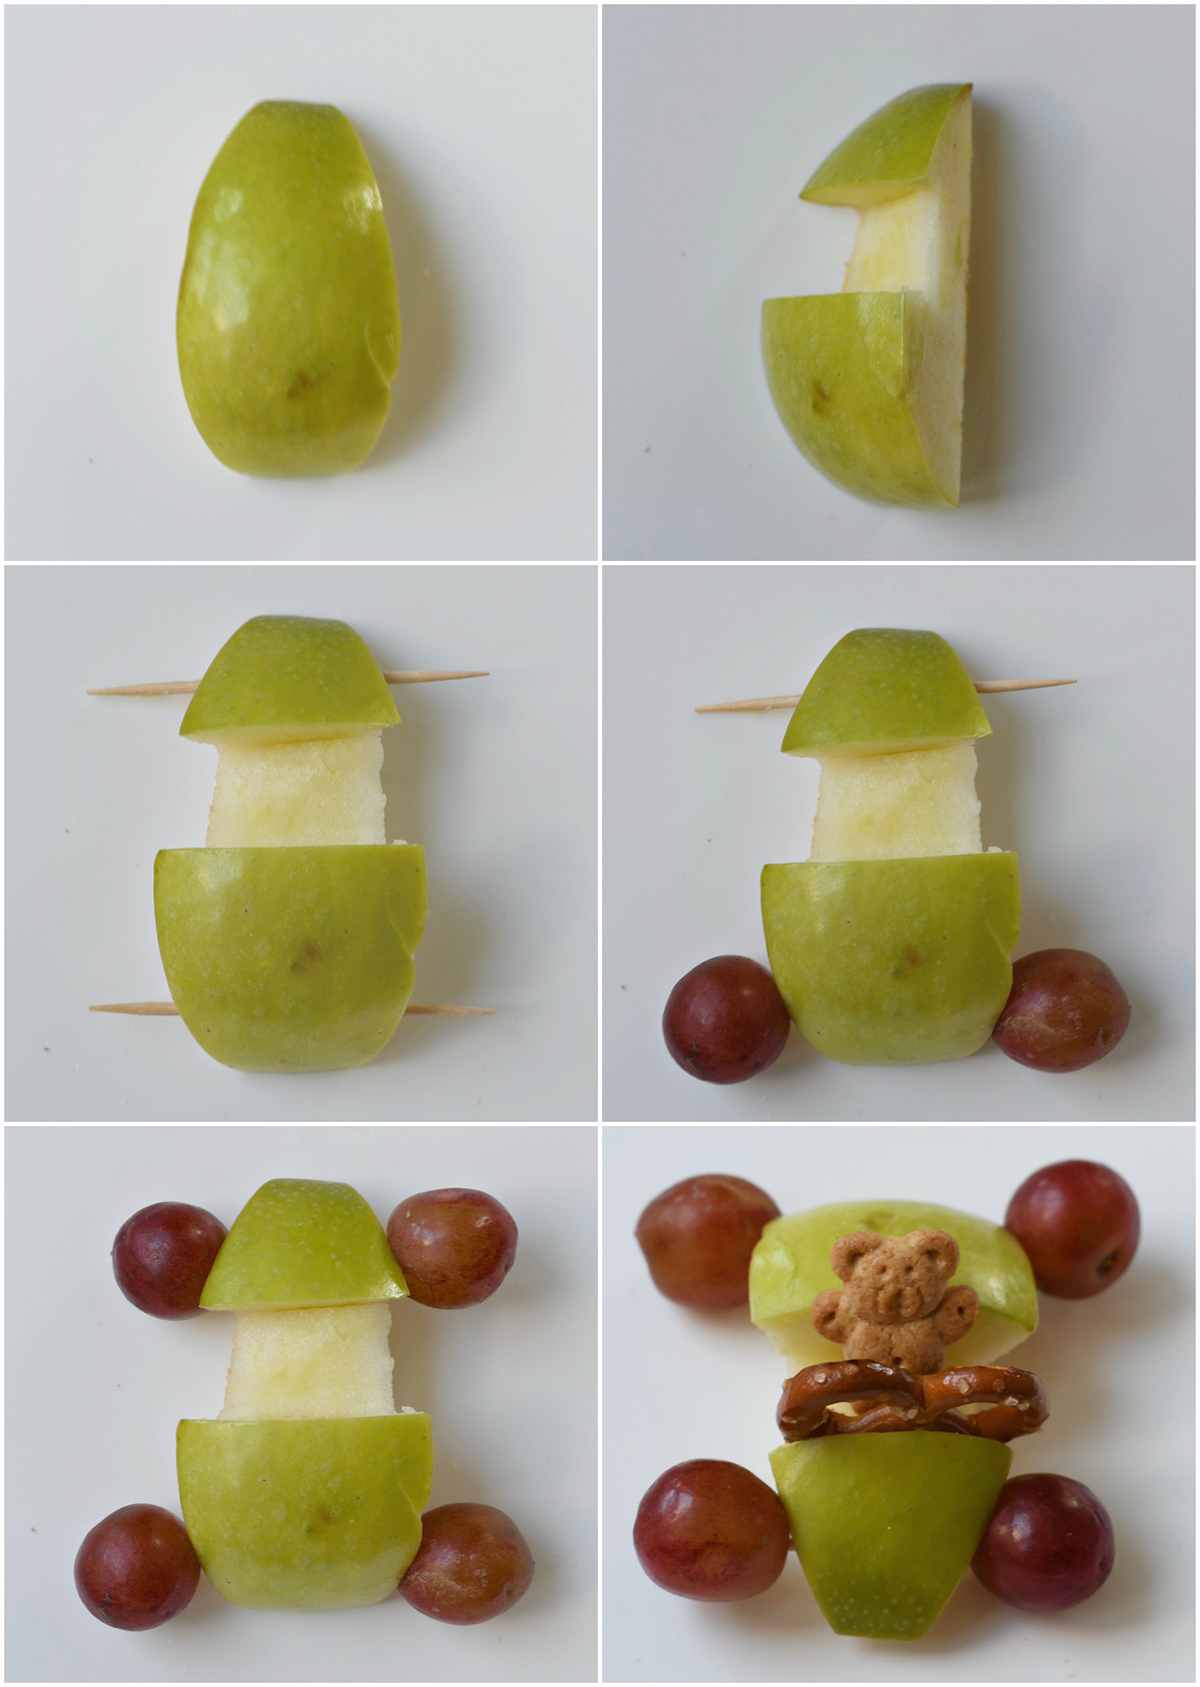 cars made of apples